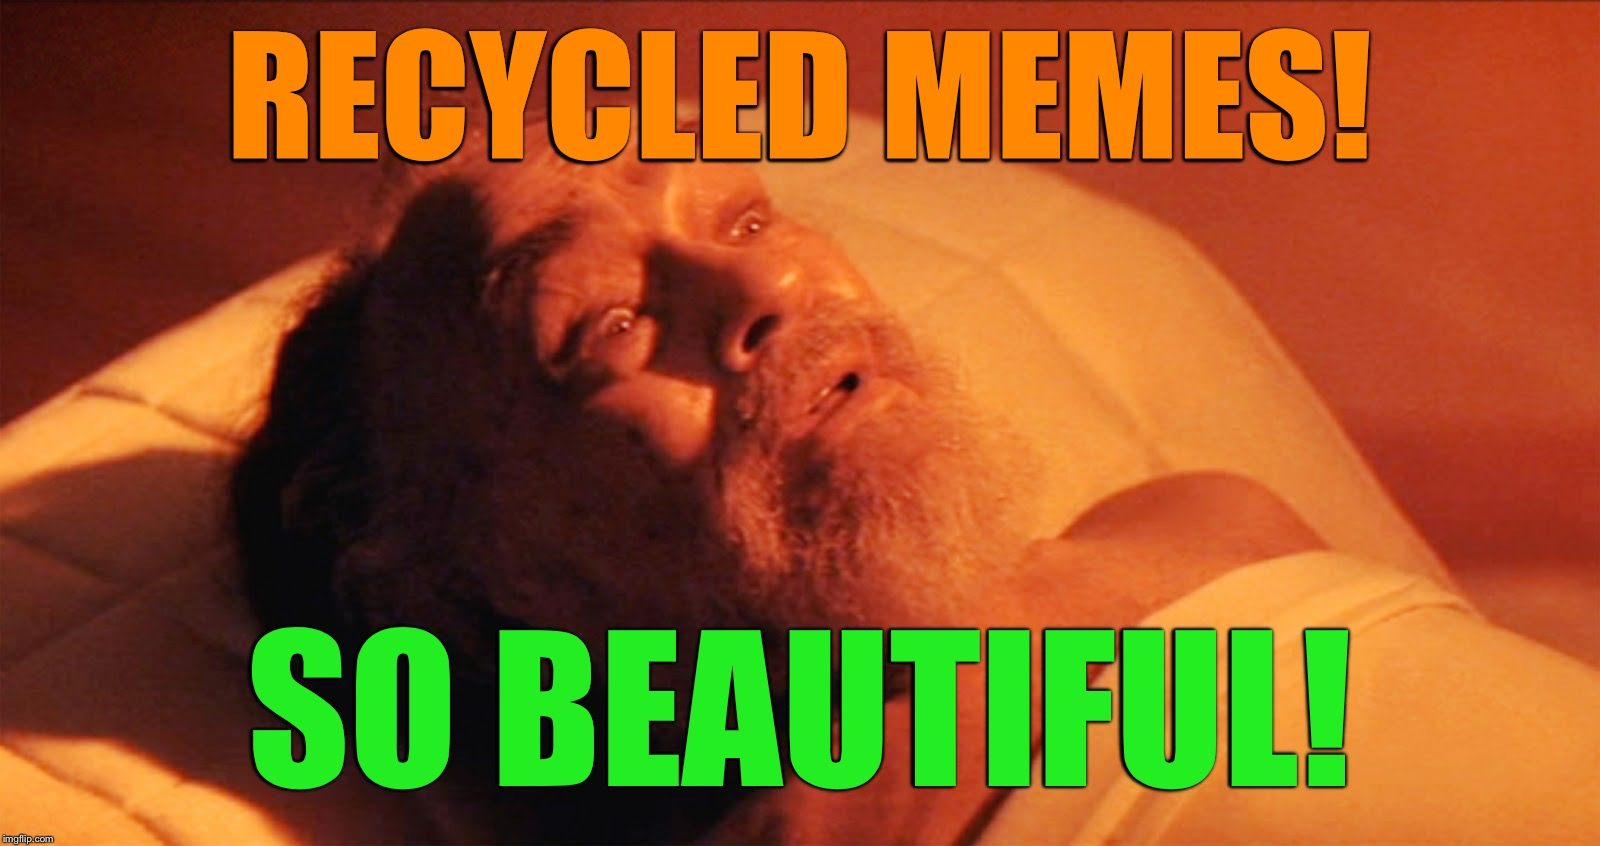 Recycled Memes! | RECYCLED MEMES! SO BEAUTIFUL! | image tagged in recycled memes,memes,soylent green | made w/ Imgflip meme maker